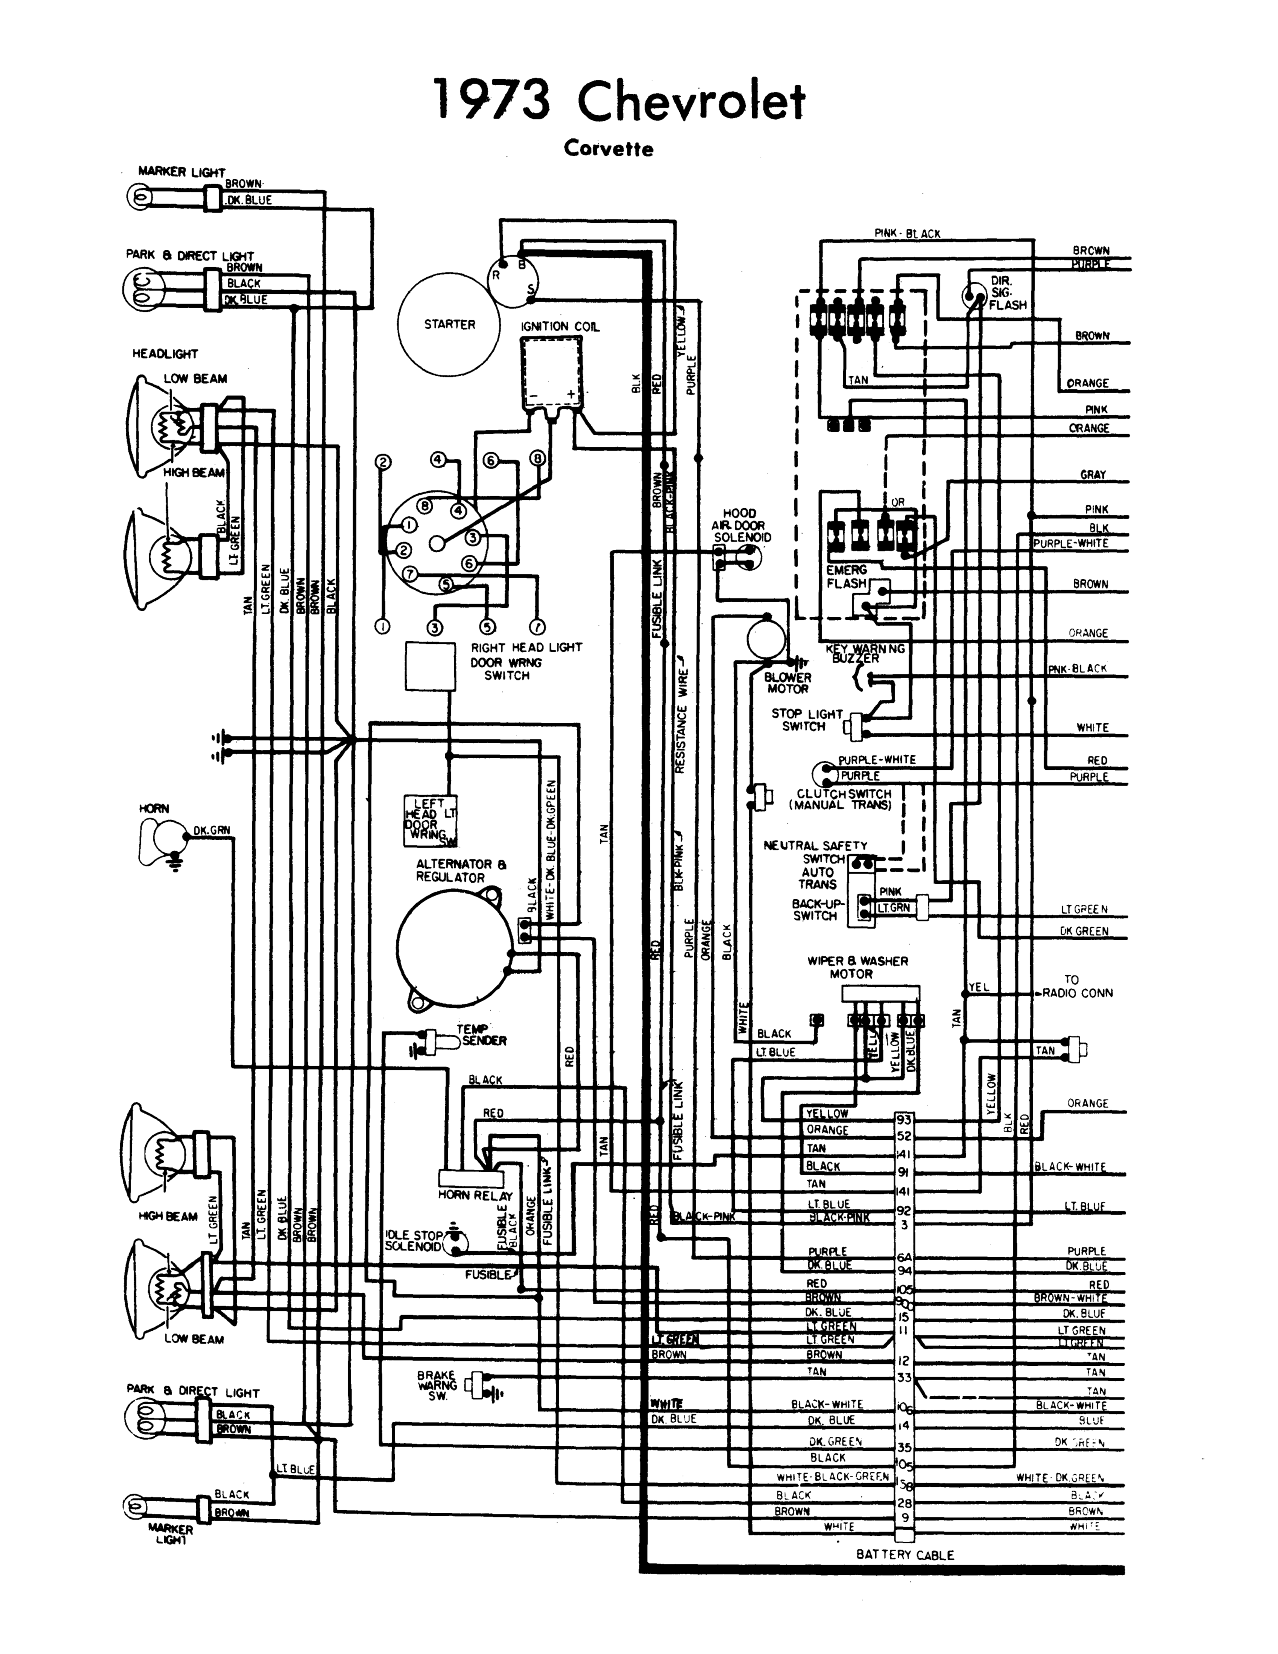 wiring diagram 1973 corvette chevy corvette 1973 wiring diagrams [ 1278 x 1654 Pixel ]